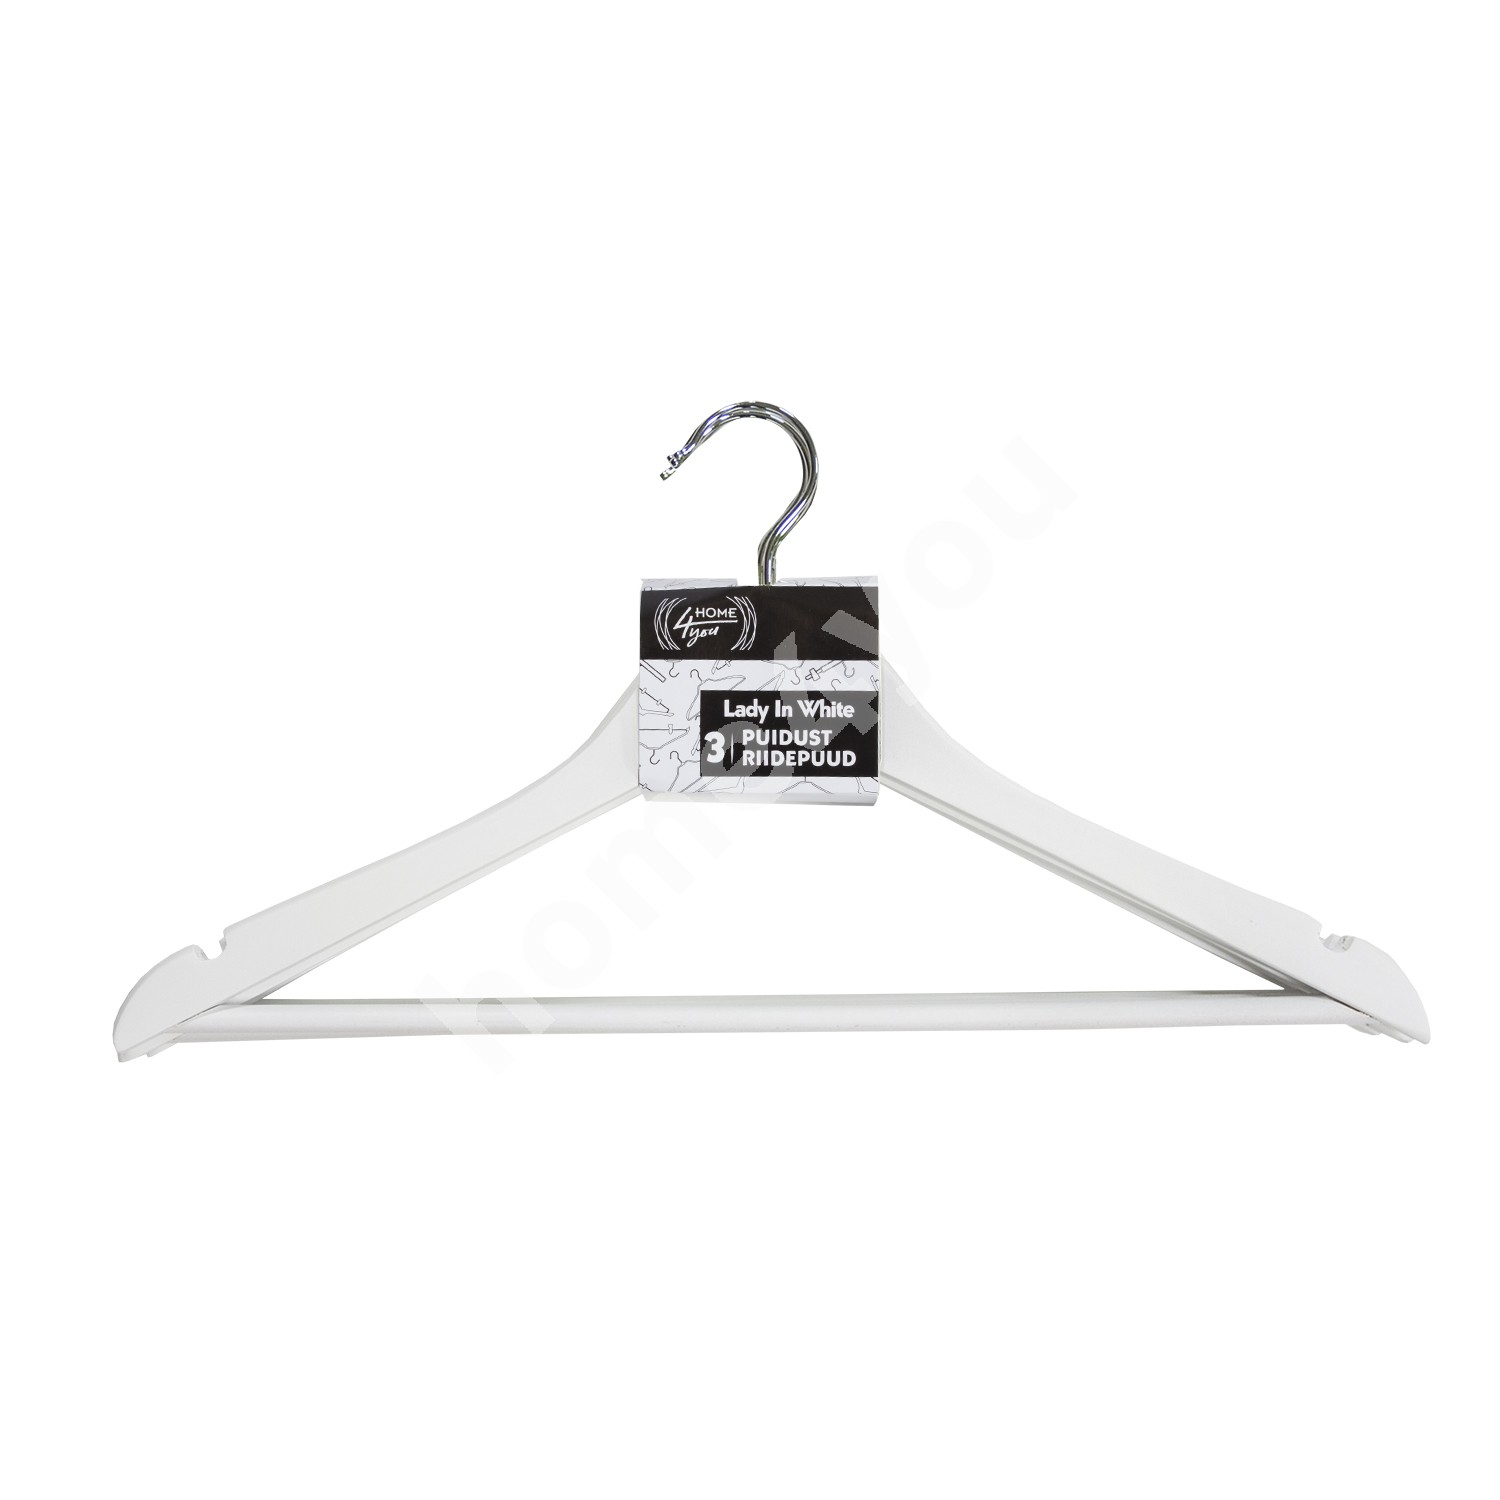 Cloth hangers 3pcs/set, LADY IN WHITE, white wood